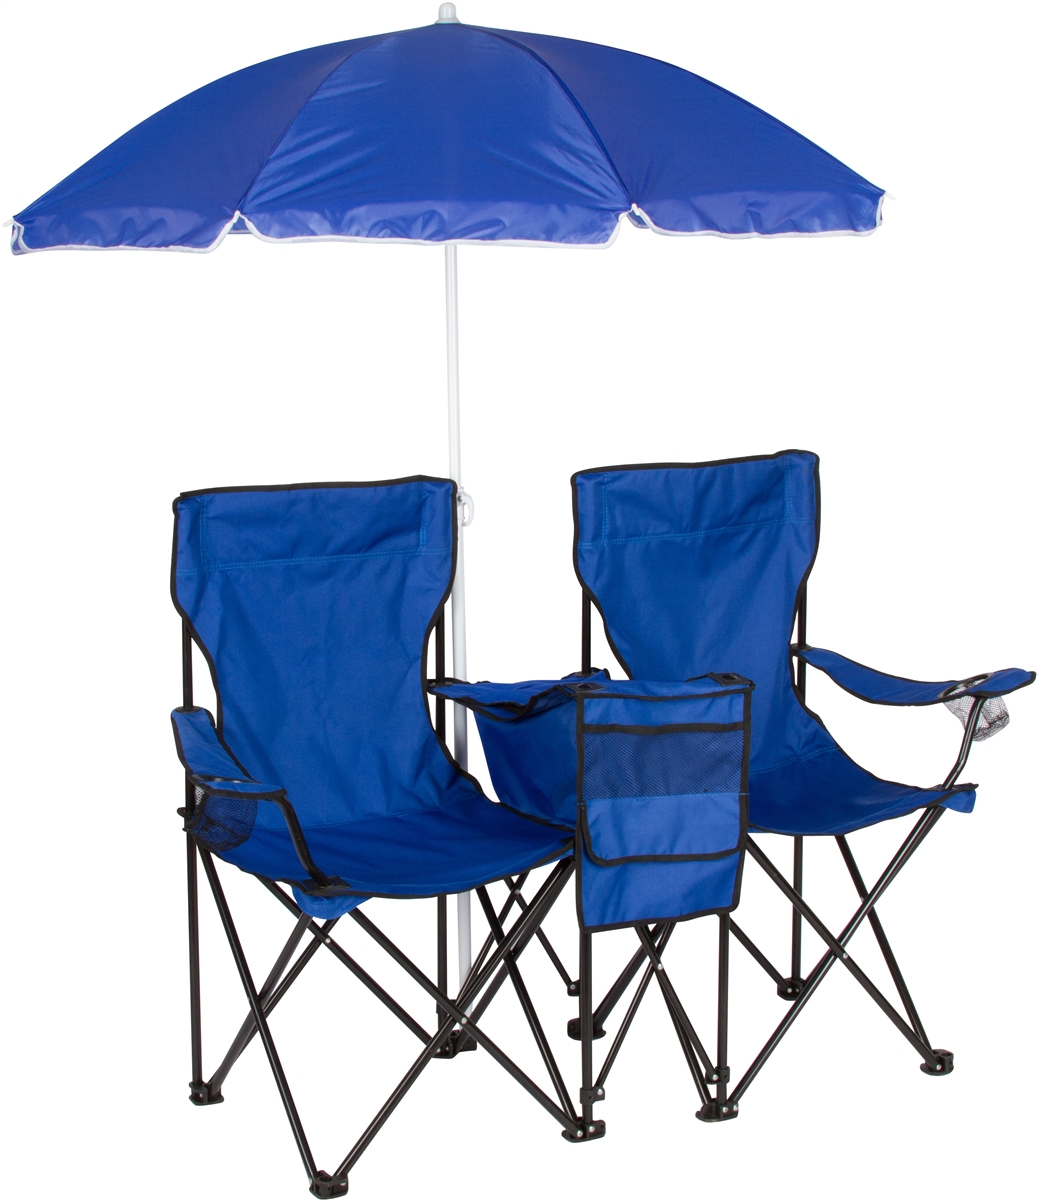 Double Folding Camping Chair Double Folding Camp And Beach Chair With Removable